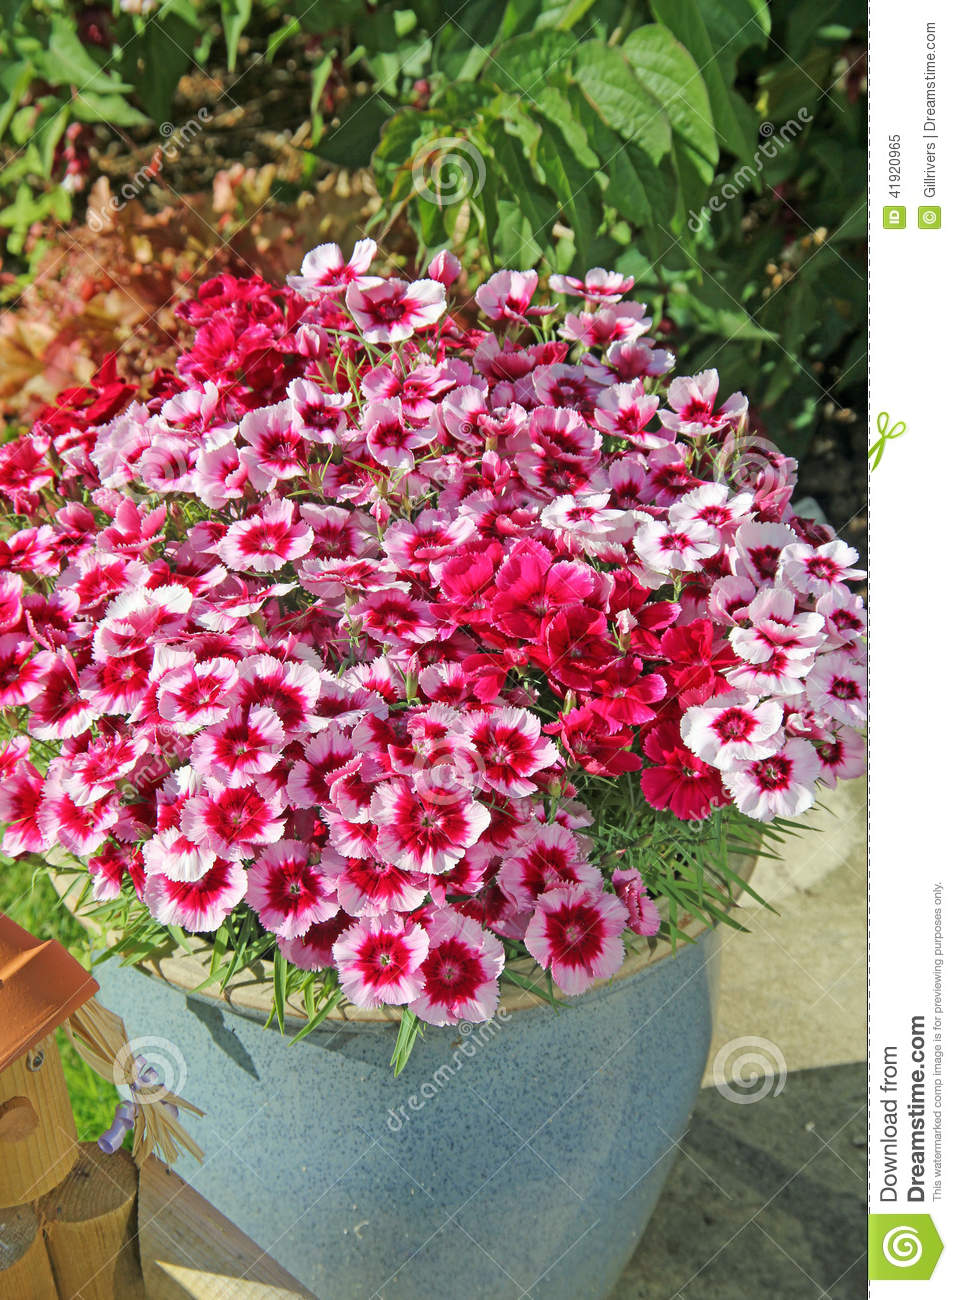 Pink potted flowers stock image image of pretty pansies 41920965 pink potted flowers mightylinksfo